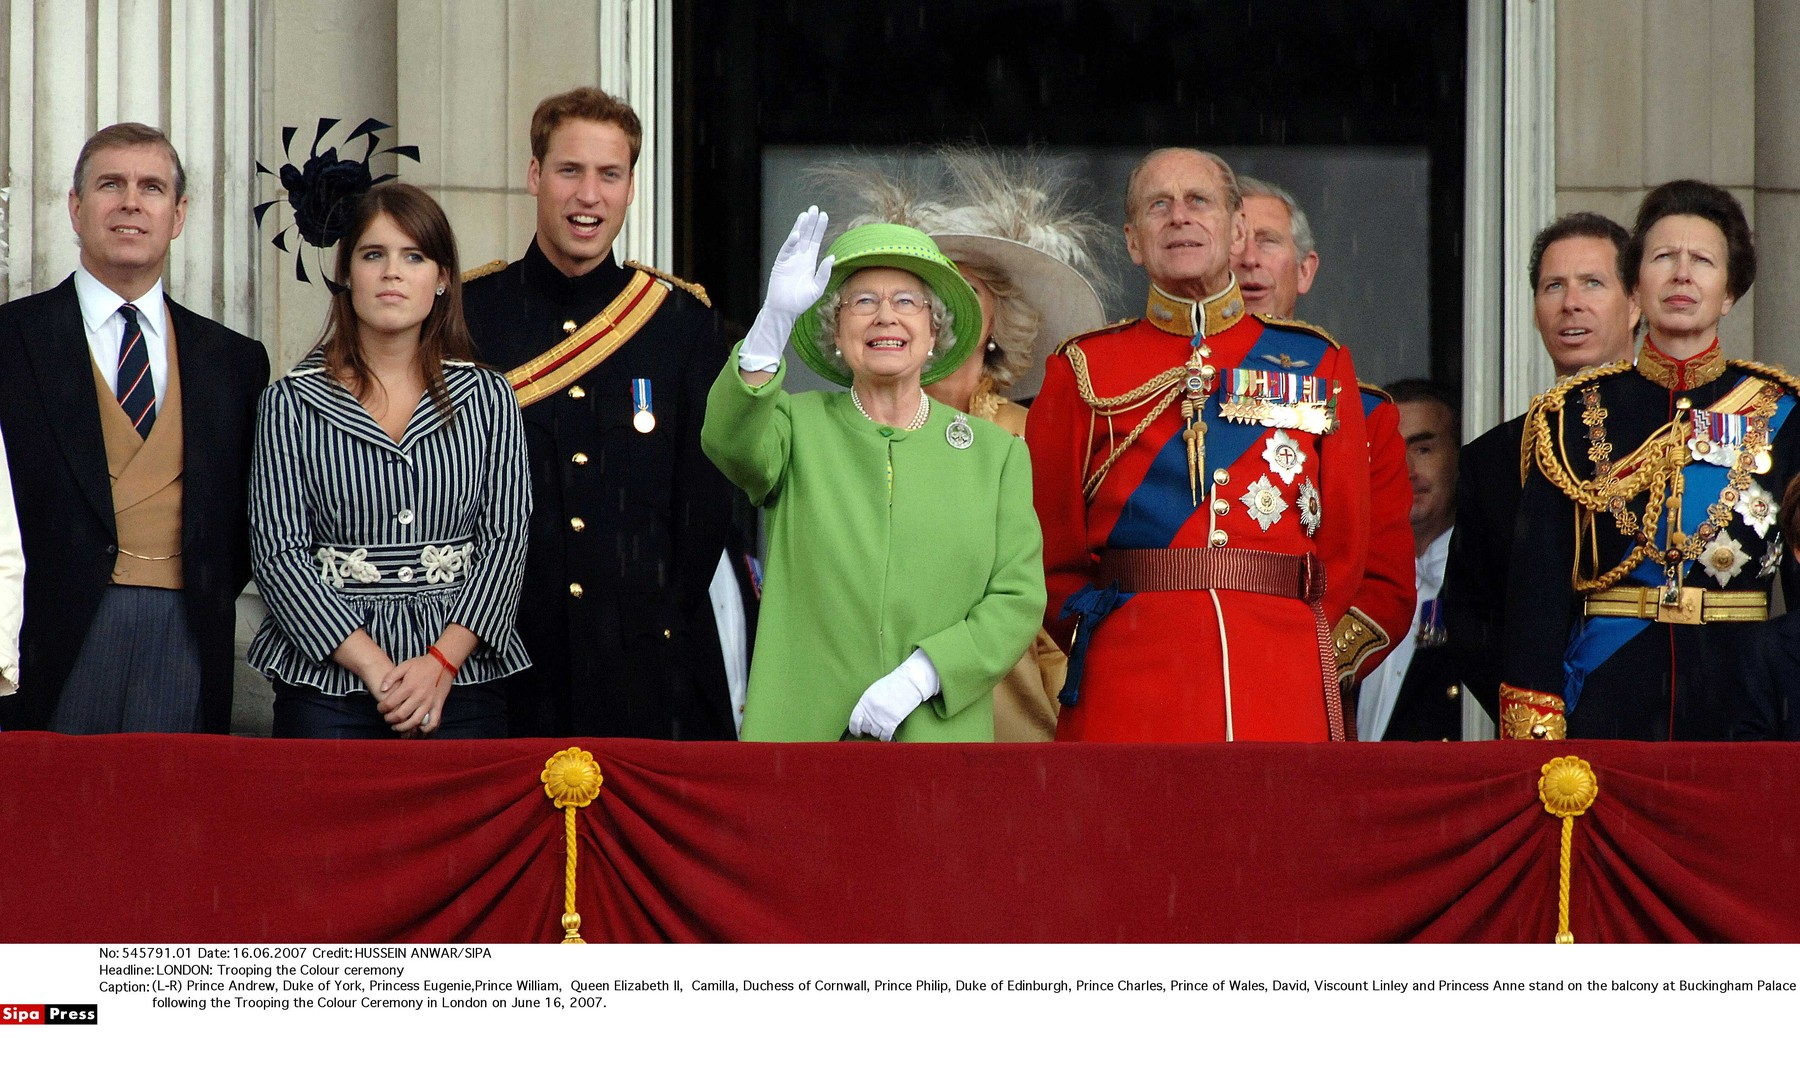 (L-R) Prince Andrew, Duke of York, Princess Eugenie,Prince William,  Queen Elizabeth ll,  Camilla, Duchess of Cornwall, Prince Philip, Duke of Edinburgh, Prince Charles, Prince of Wales, David, Viscount Linley and Princess Anne stand on the balcony at Buckingham Palace following the Trooping the Colour Ceremony in London on June 16, 2007., Image: 220747362, License: Rights-managed, Restrictions: 02270077/NONDUPLI, Model Release: no, Credit line: HUSSEIN ANWAR / Sipa Press / Profimedia